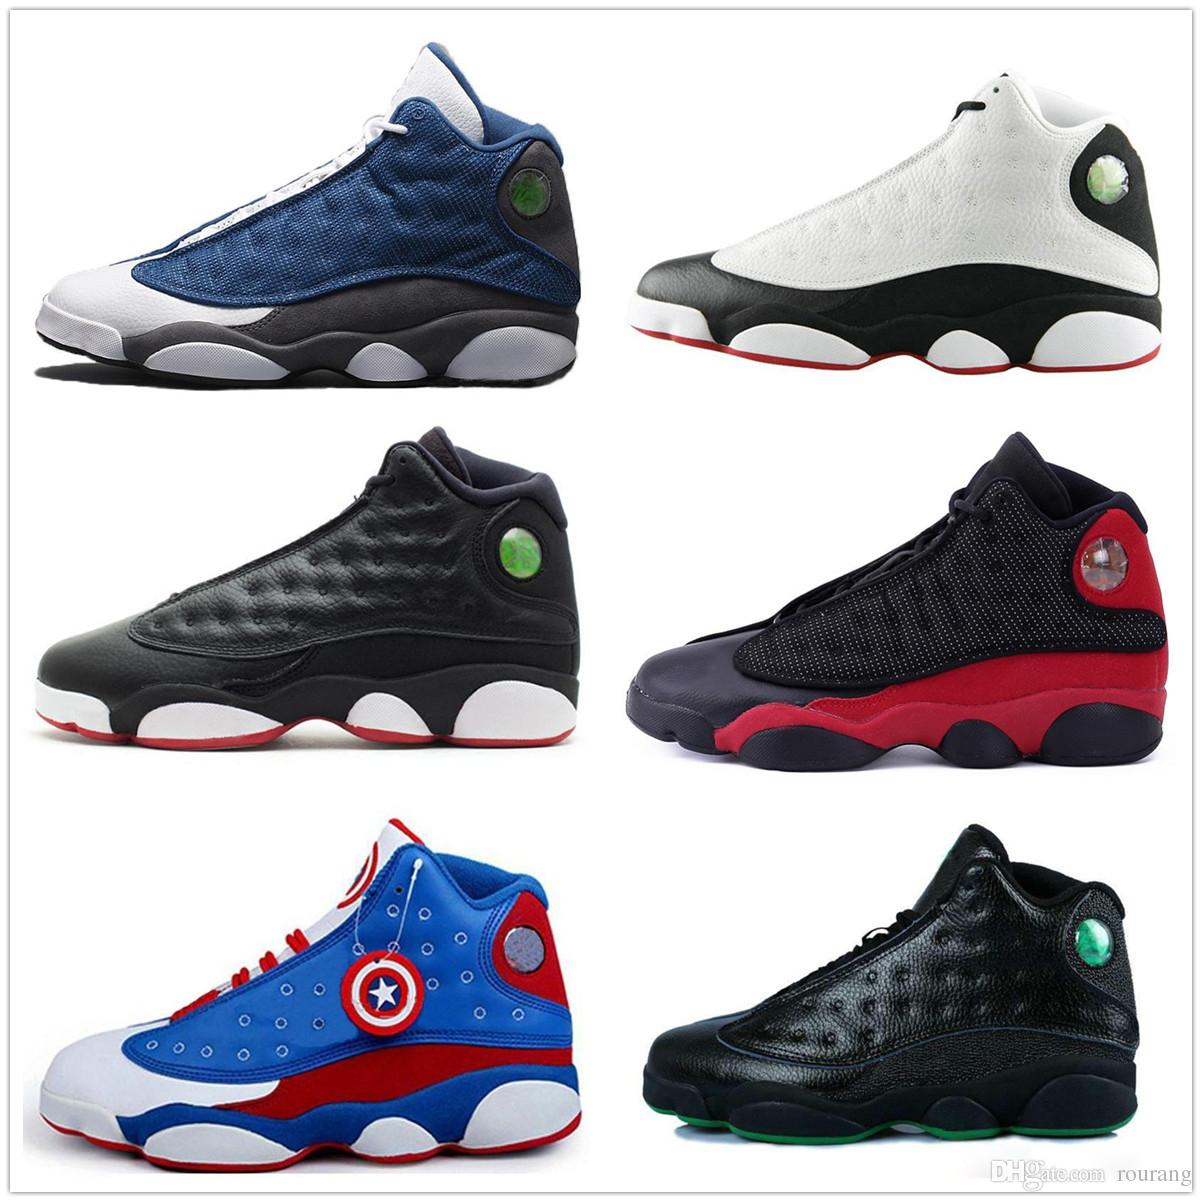 hot sale online 276ff 5db9e Mens shoes 13 Basketball shoes 13s Pure Money Ray Allen 2018 New Designer  sneakers He Got Game Altitude outdoors Sports Kids us 8-13